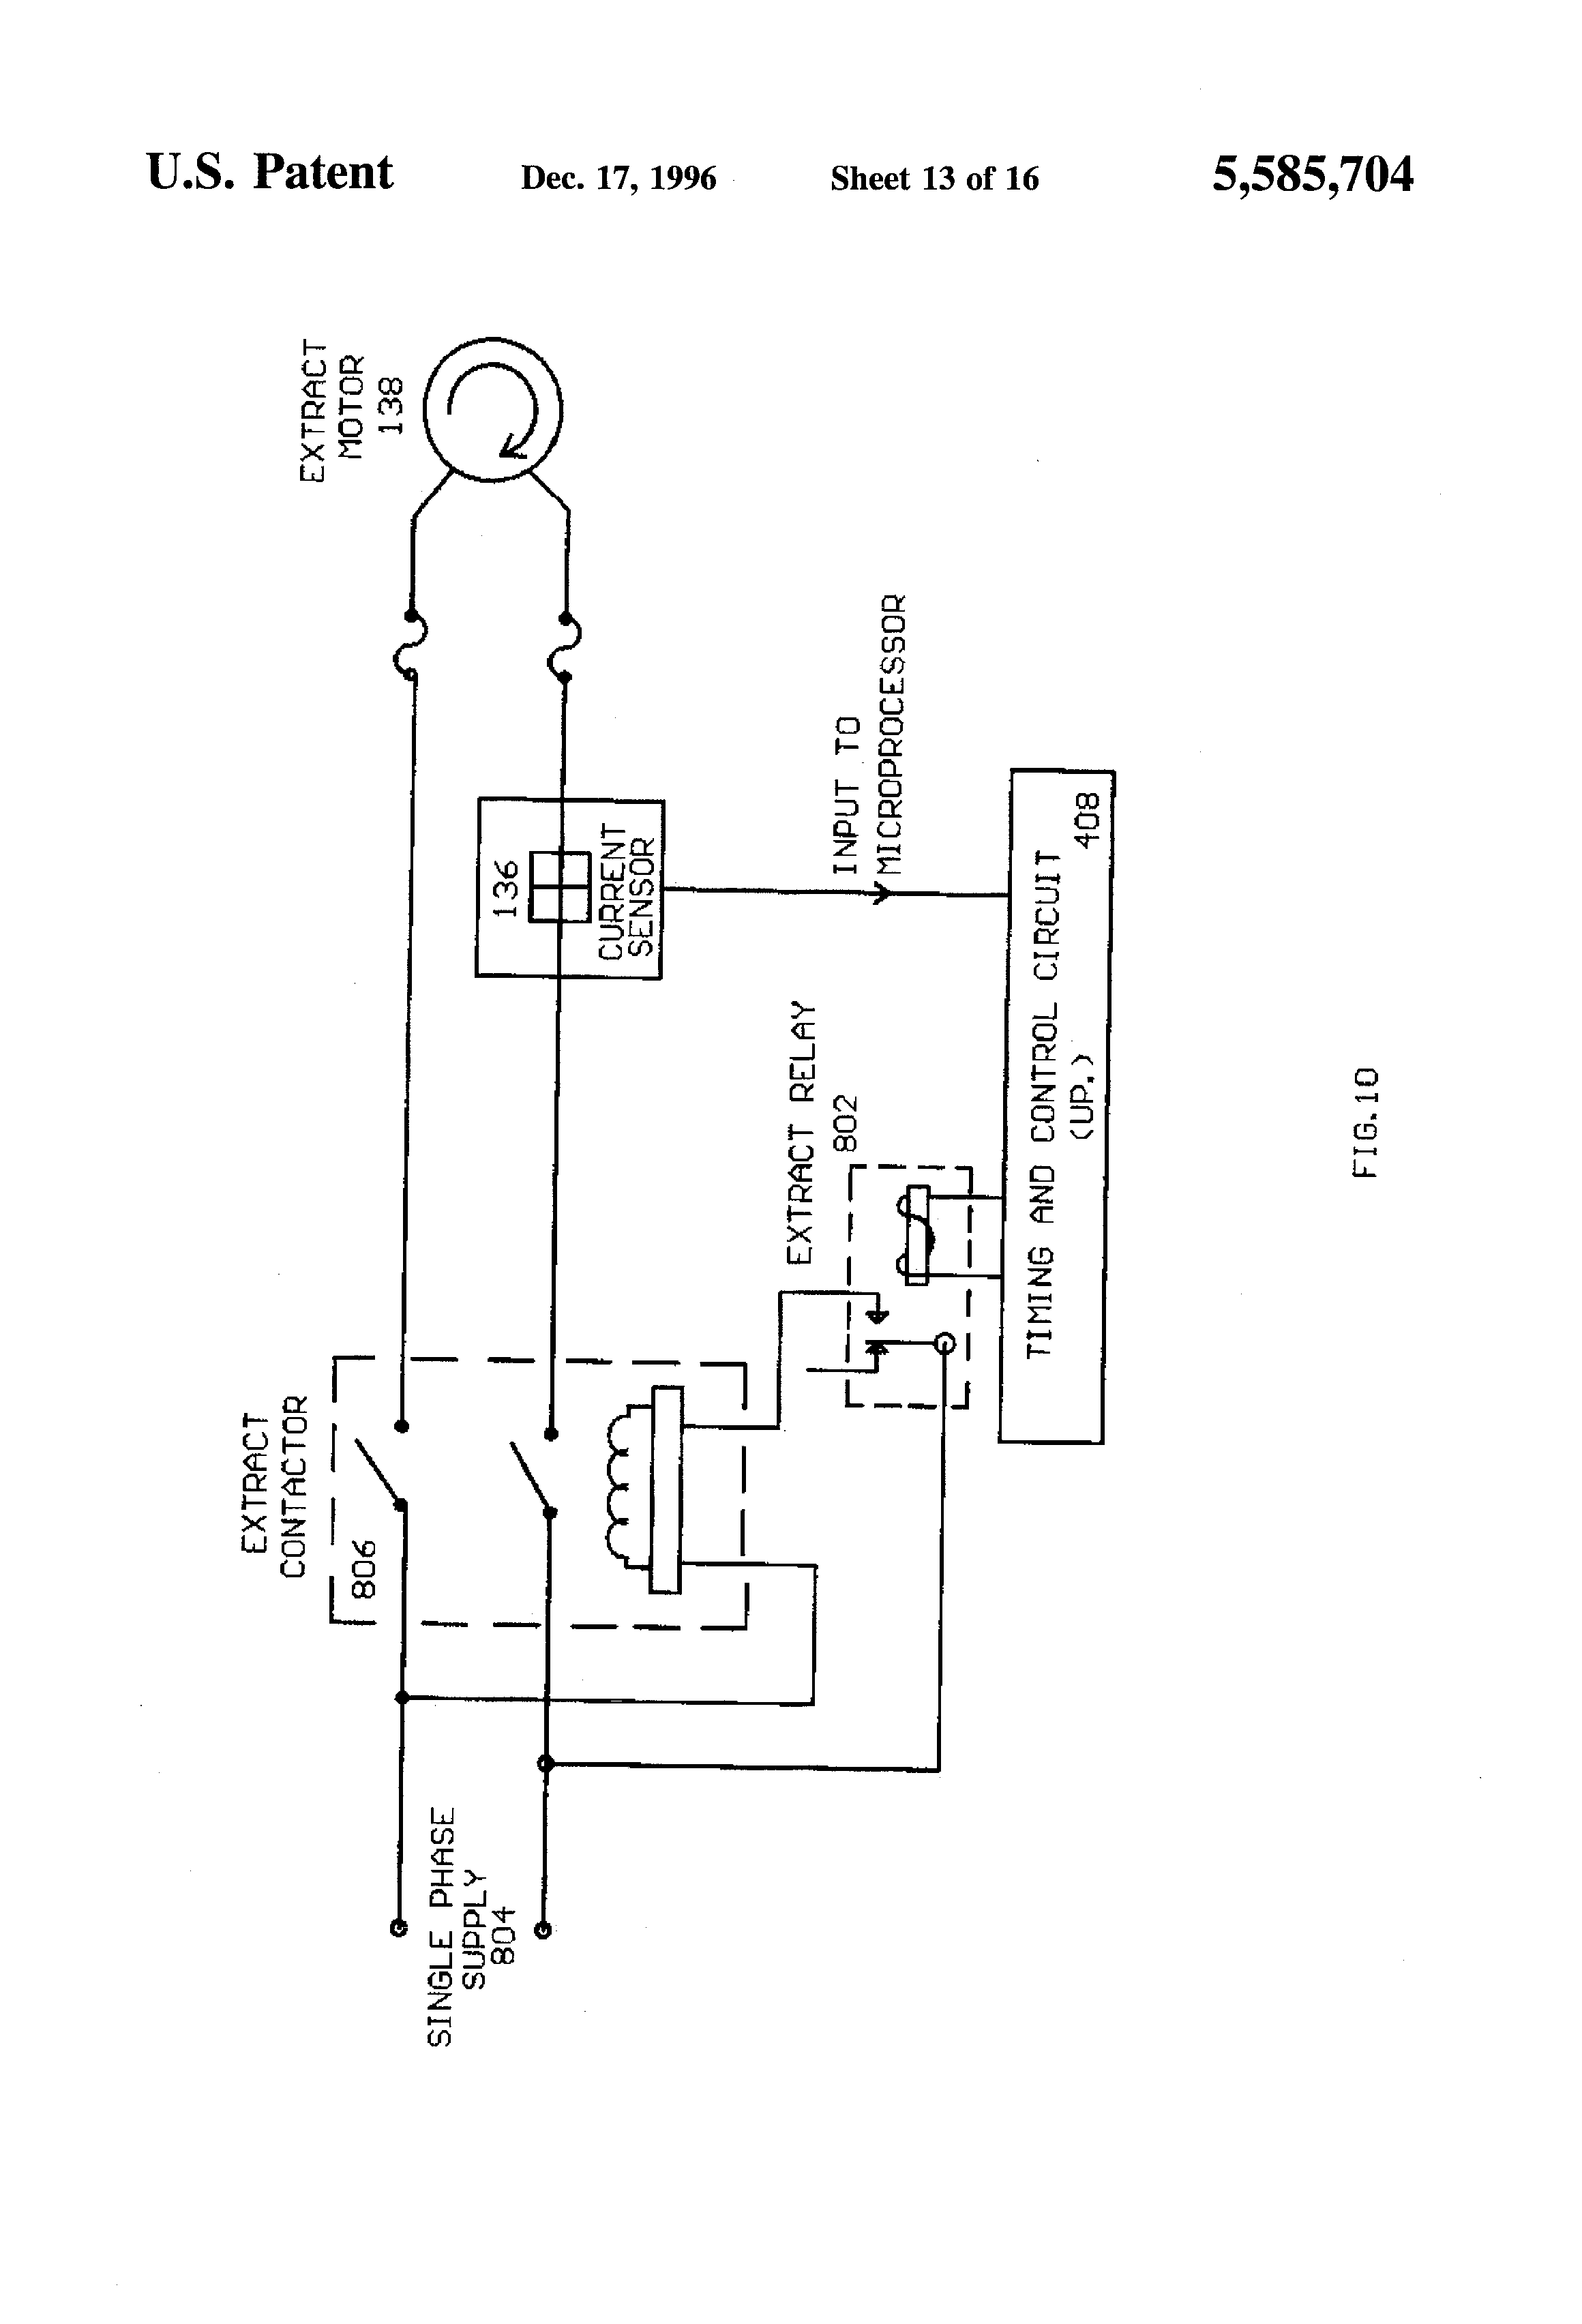 semi automatic washing machine circuit diagram semi patent us5585704 computer means for commercial washing machines on semi automatic washing machine circuit diagram